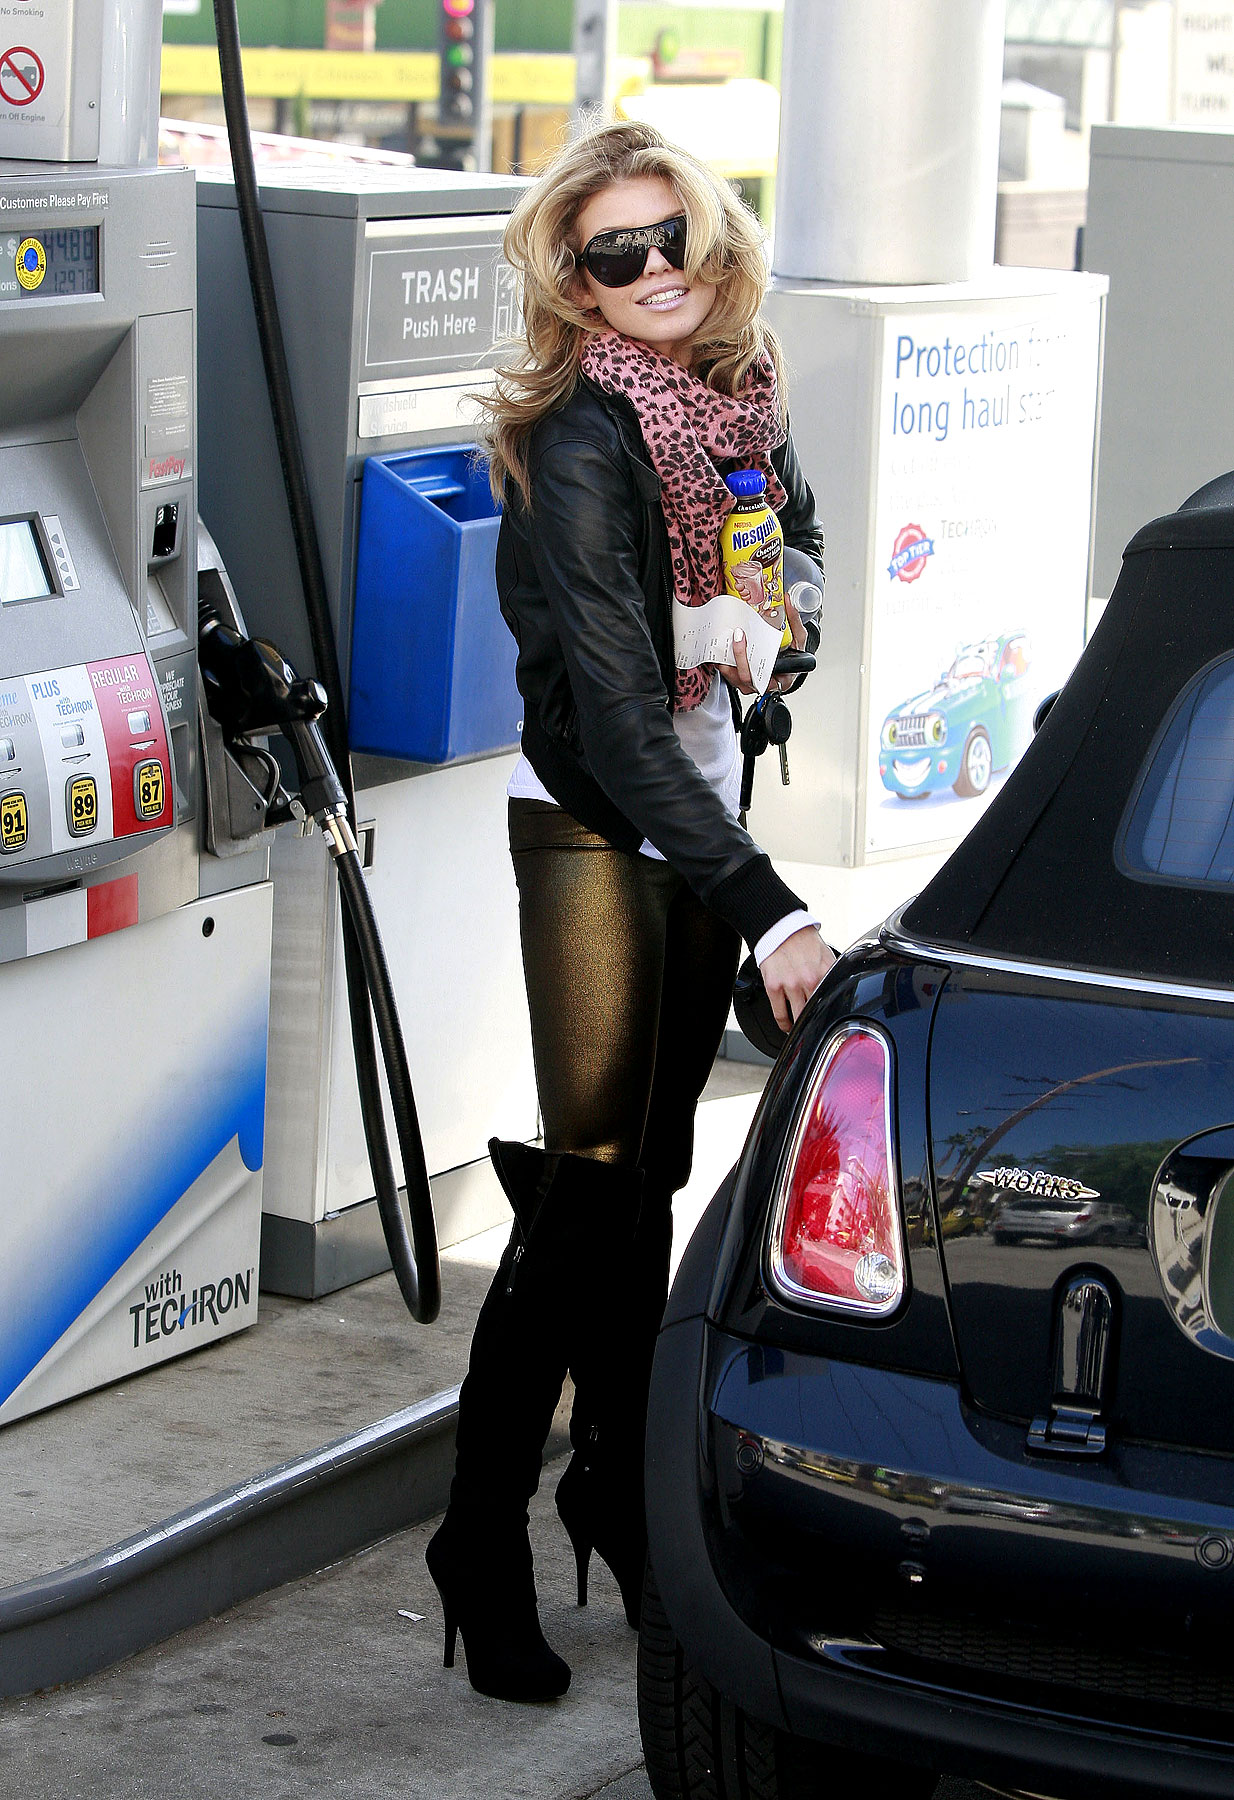 PHOTO GALLERY: AnnaLynne McCord Makes Pumping Gas Look Good